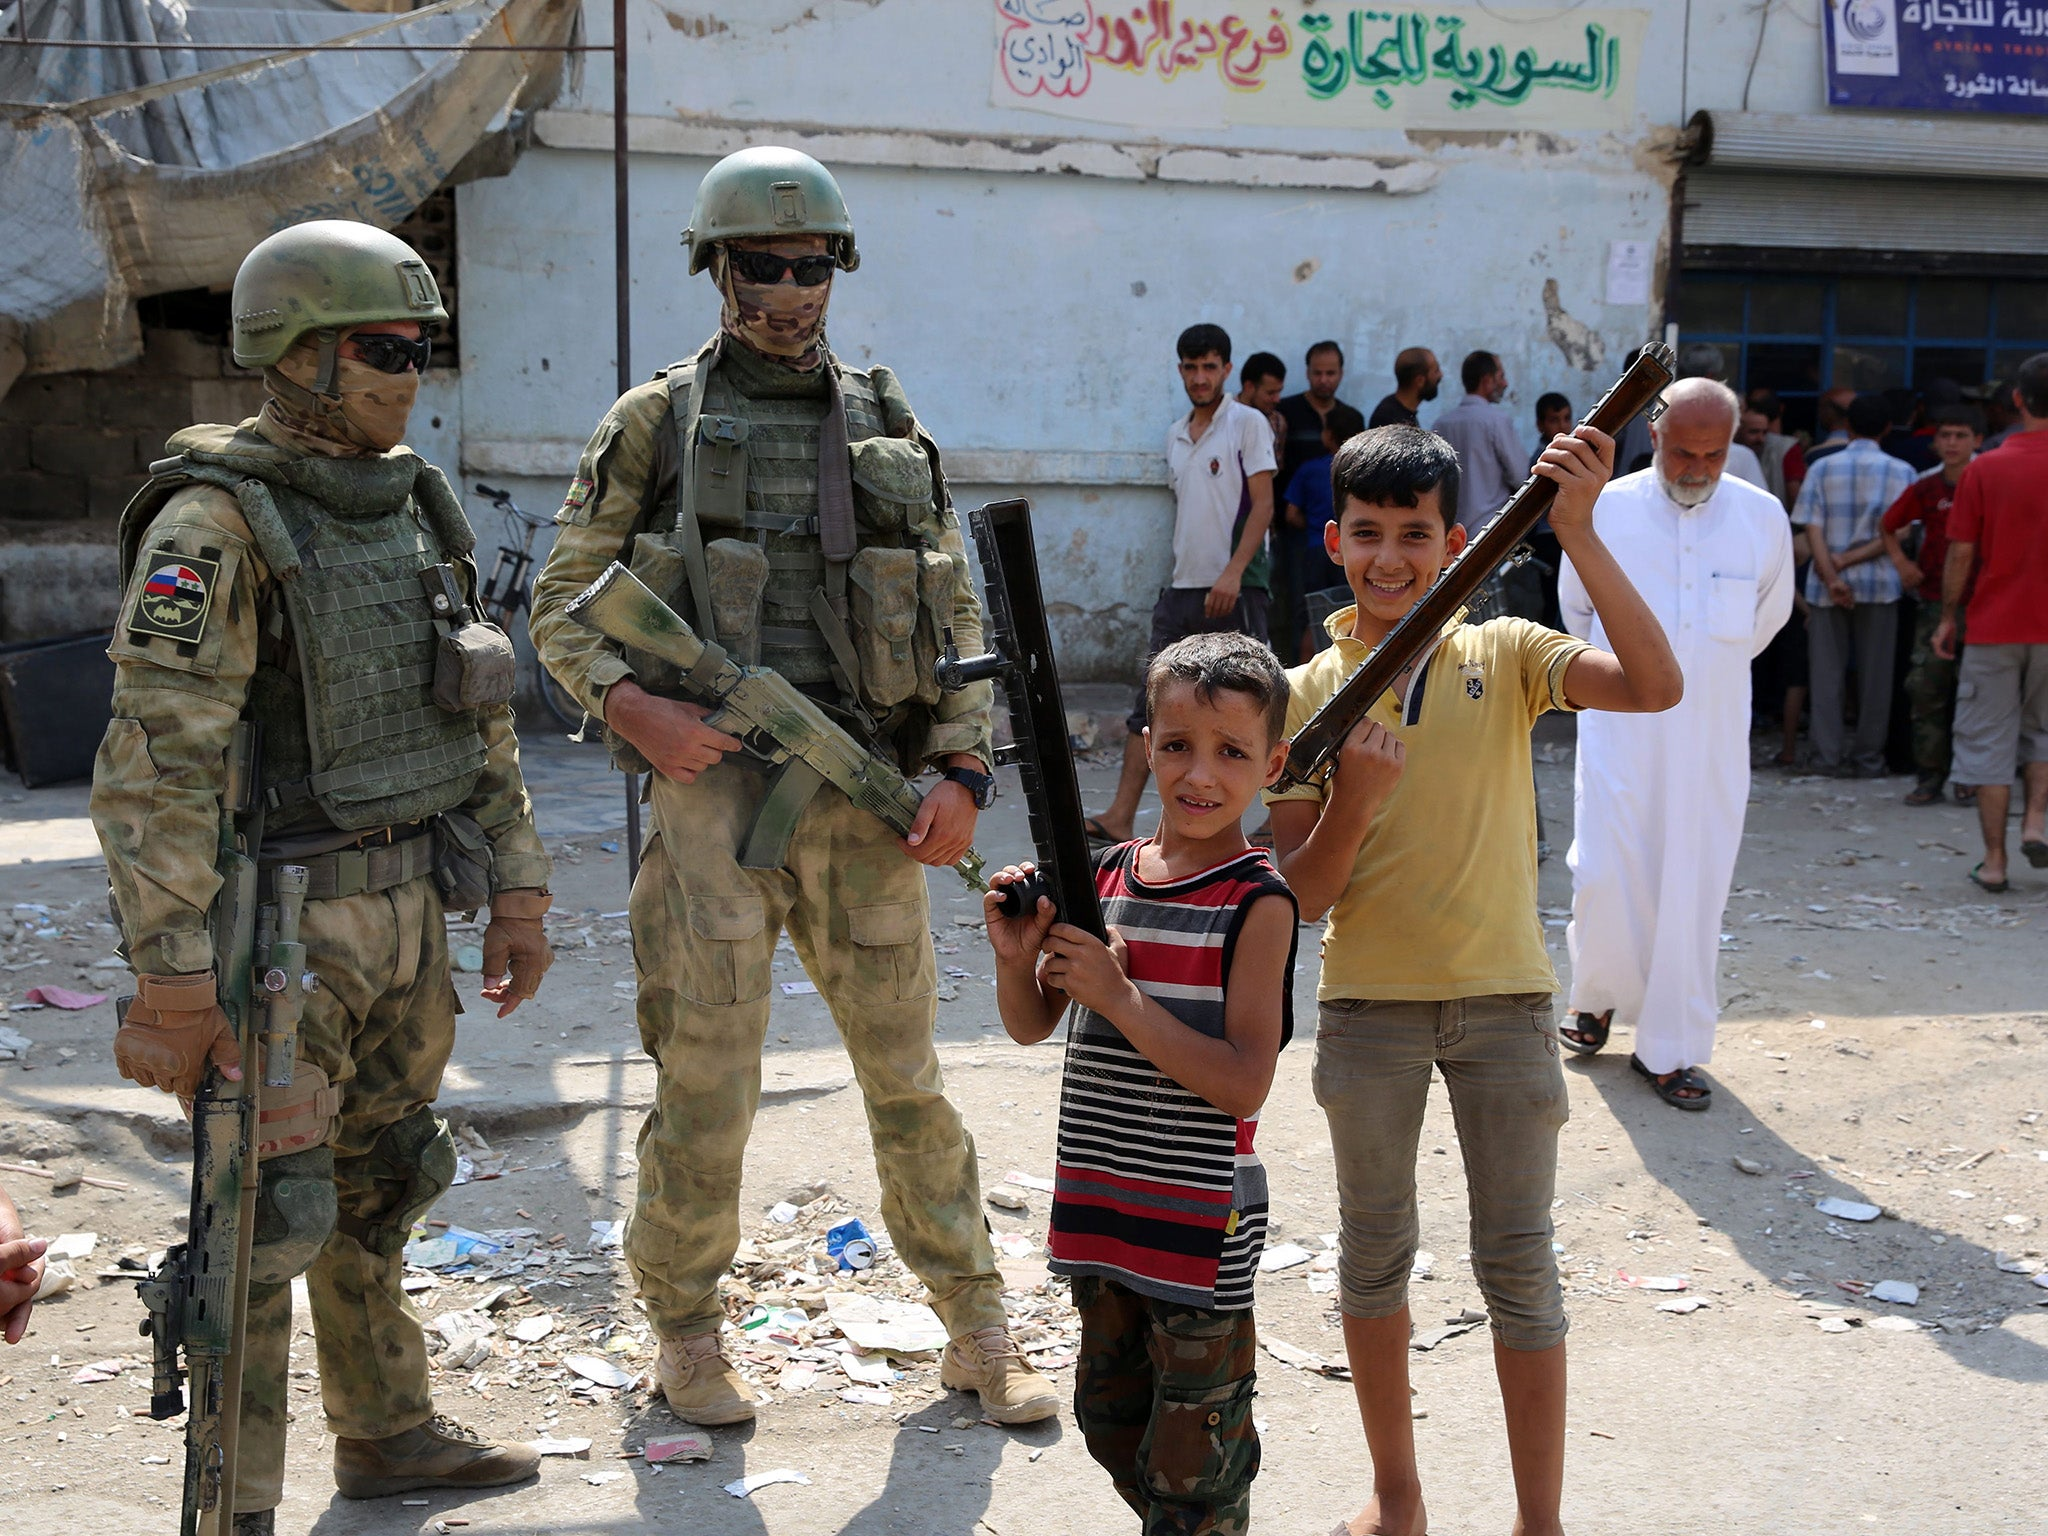 Members of the Russian Special Forces with Syrian children in Deir Ezzor - (Getty Images)